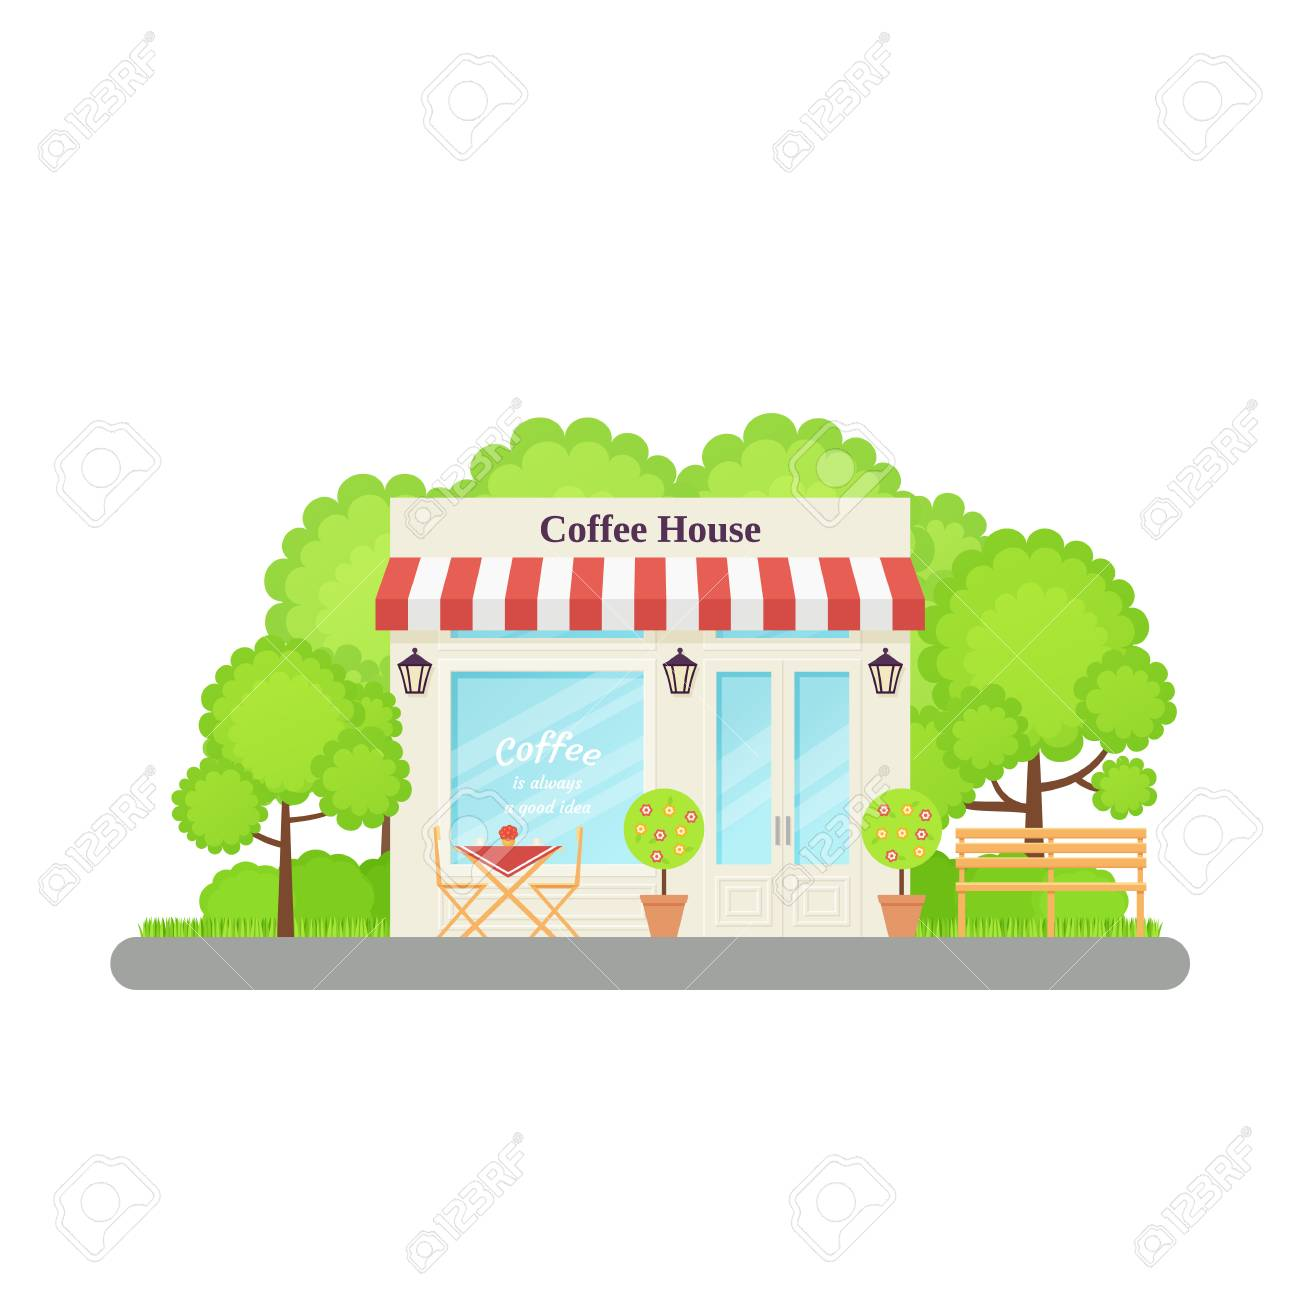 Cafe Shop Vector Coffee House Restaurant Store Front Storefront Royalty Free Cliparts Vectors And Stock Illustration Image 115347960